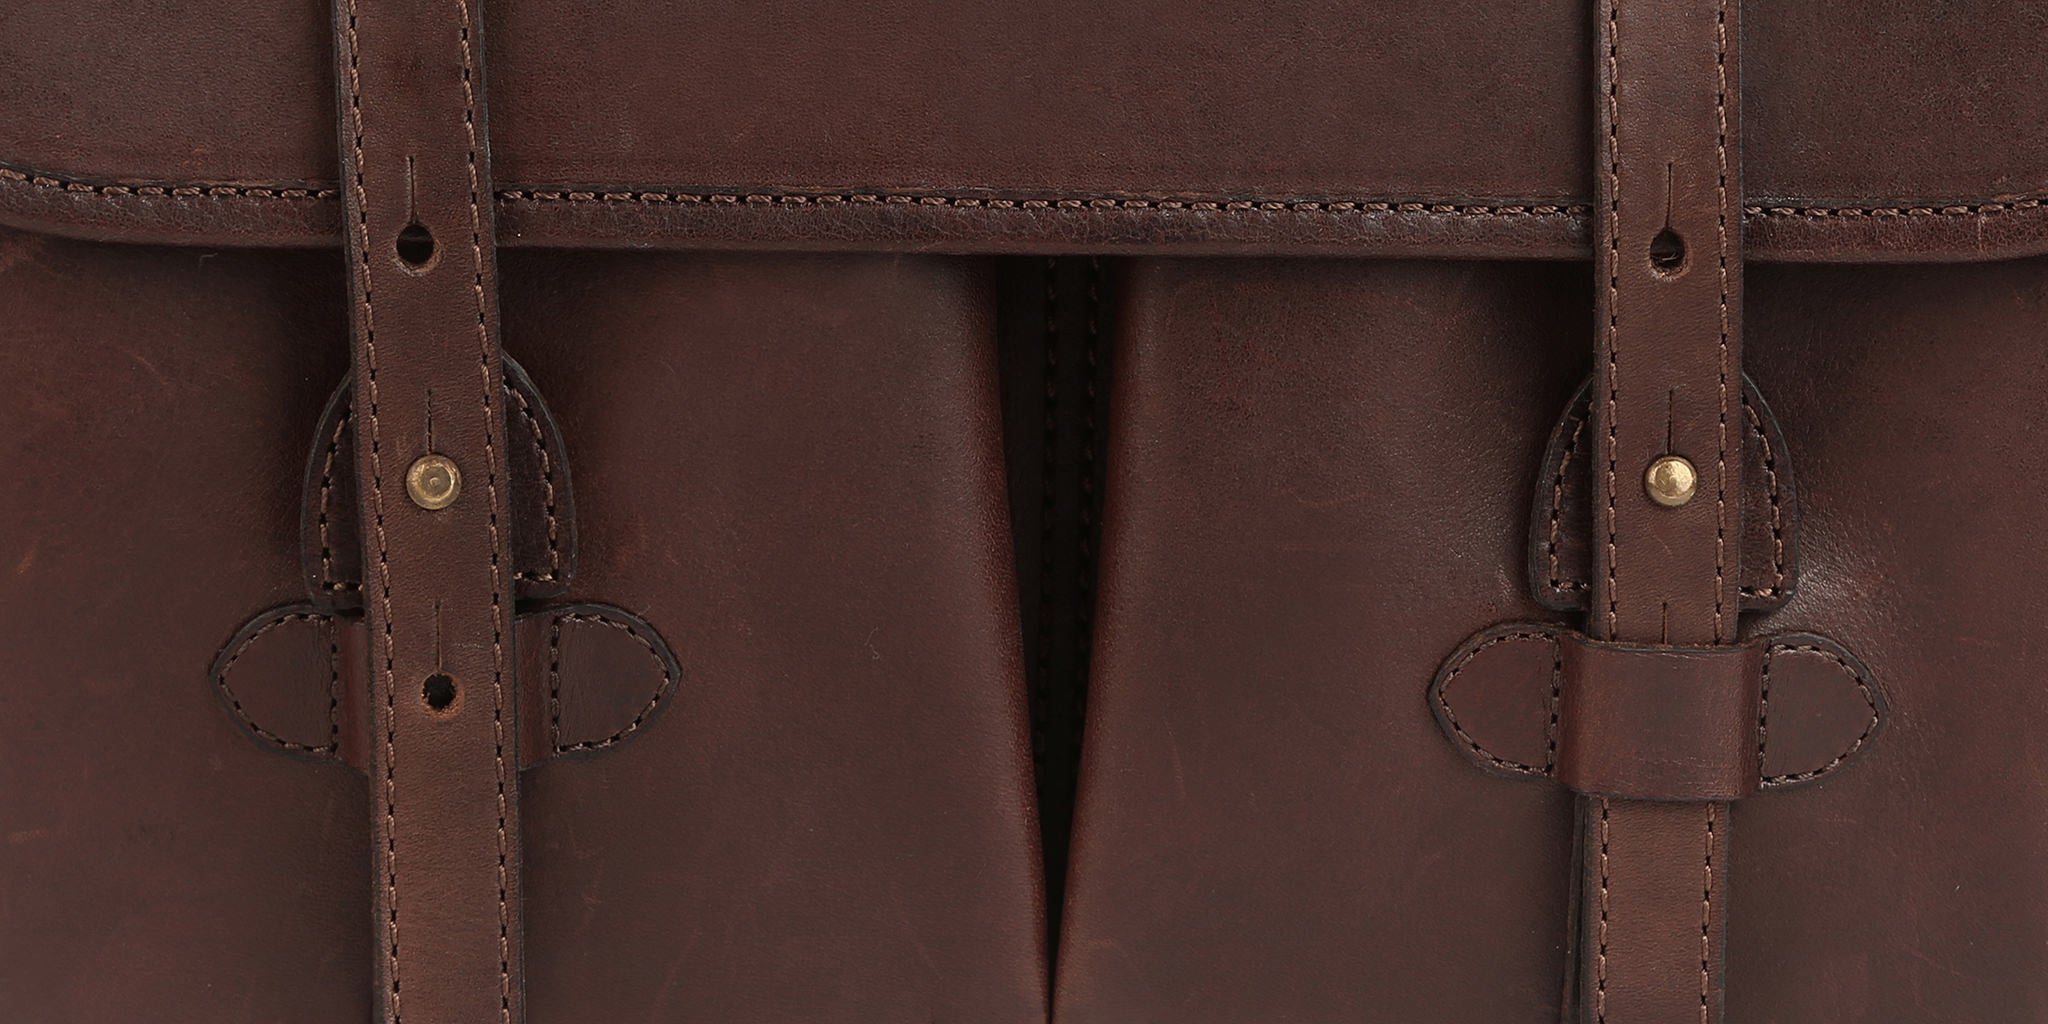 Two easy ways to close your bag. Use only the brass stud for fast access, or also the leather slot for security.